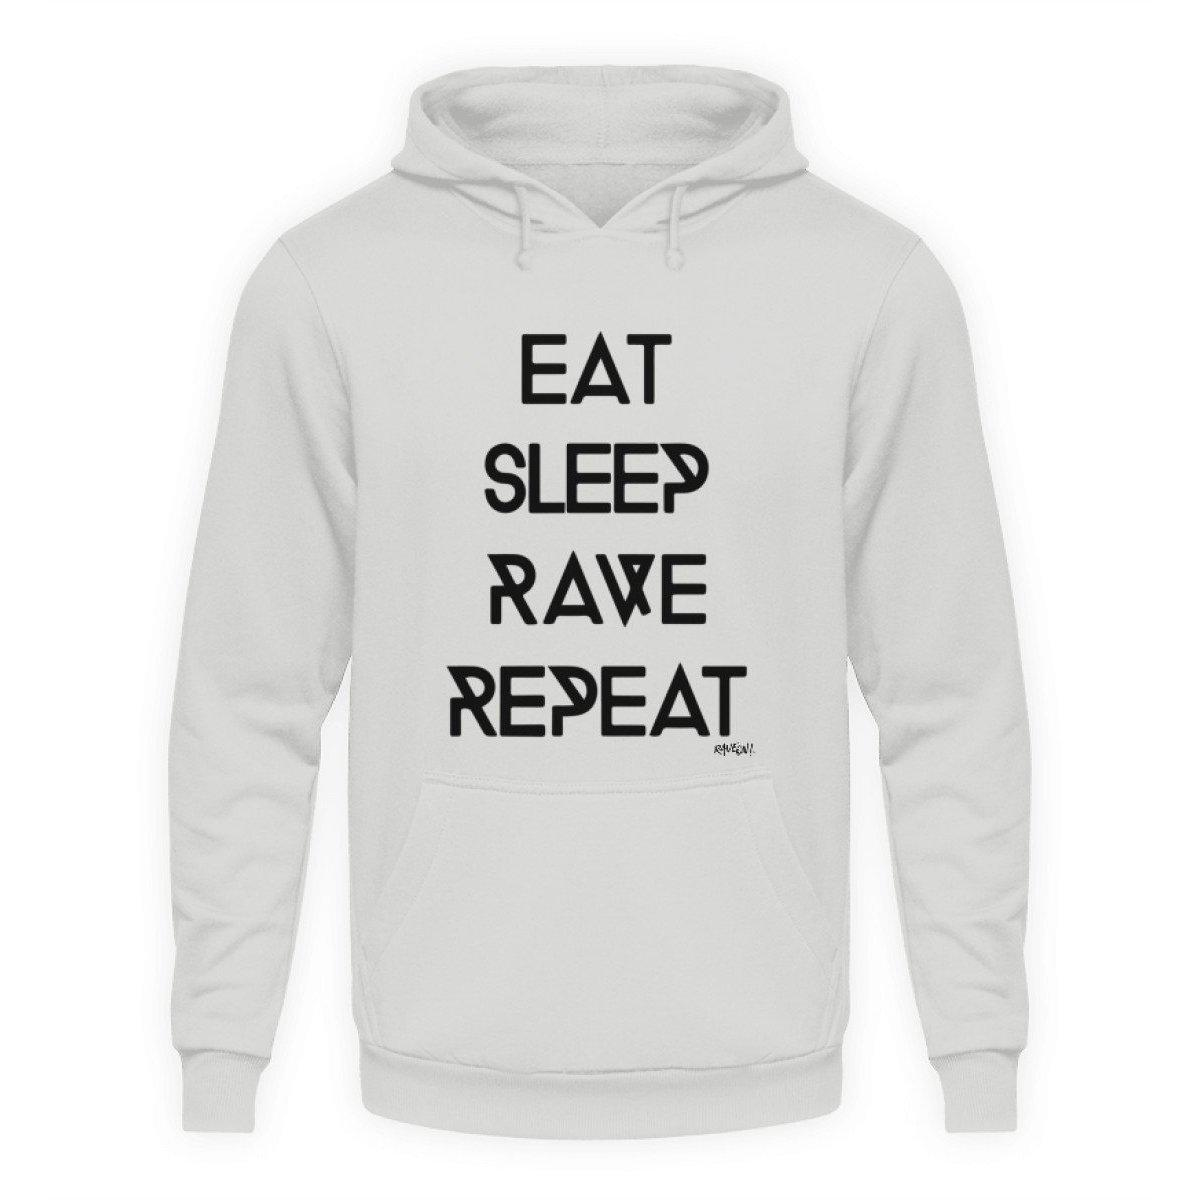 Eat Sleep Rave Repeat - Rave On!® - Unisex Kapuzenpullover Hoodie Unisex Hoodie Sport Grey / L - Rave On!® der Club & Techno Szene Shop für Coole Junge Mode Streetwear Style & Fashion Outfits + Sexy Festival 420 Stuff